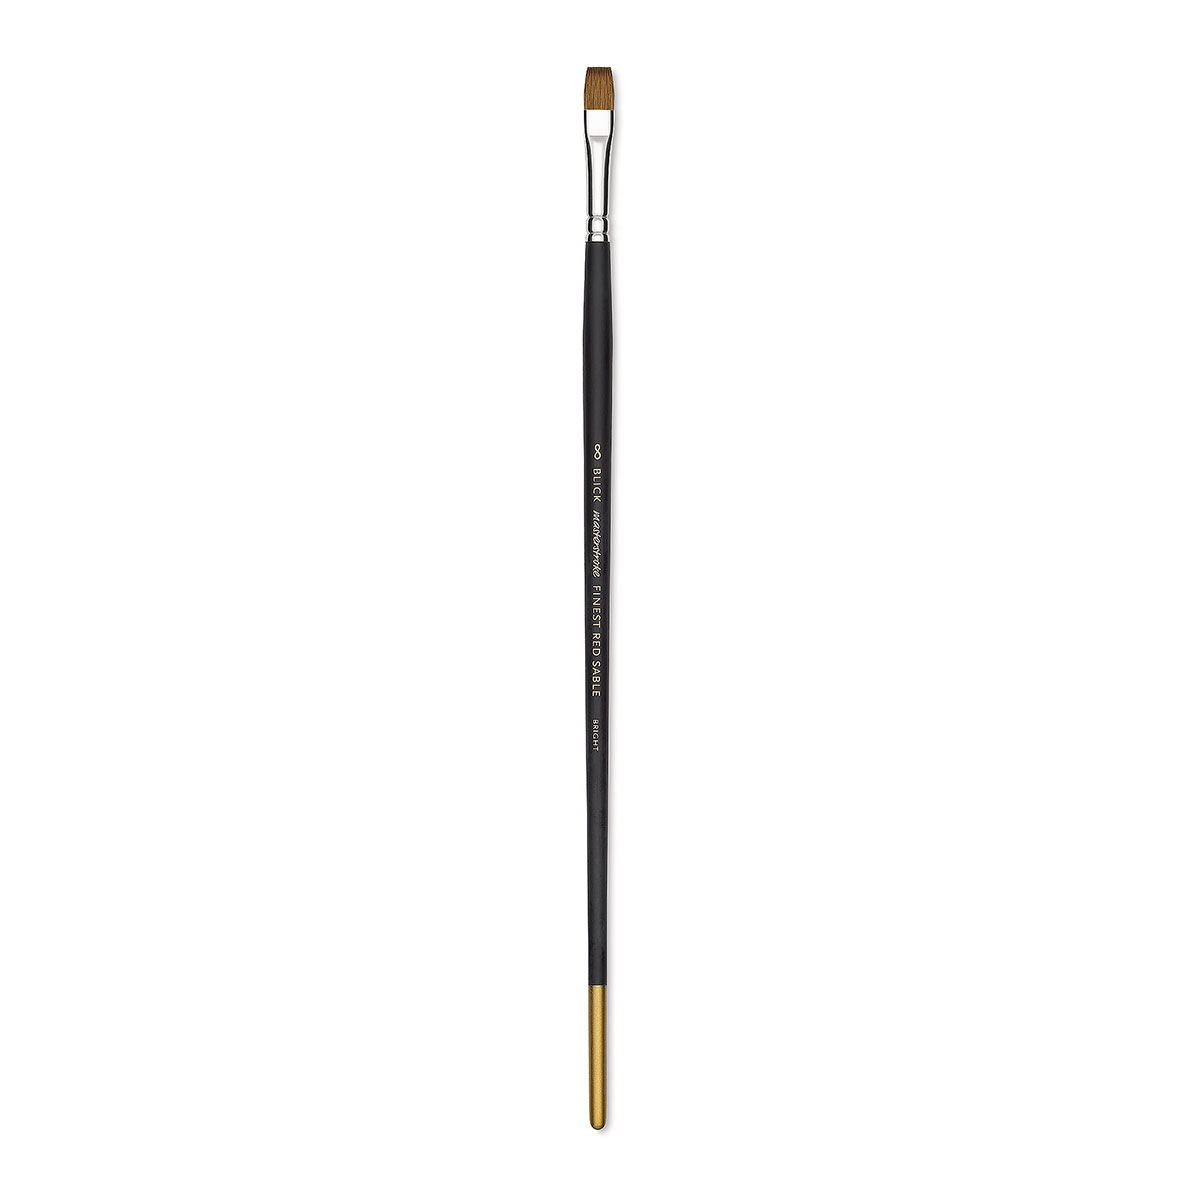 Blick Masterstroke Finest Red Sable Brush - Bright, Size 8, Long Handle